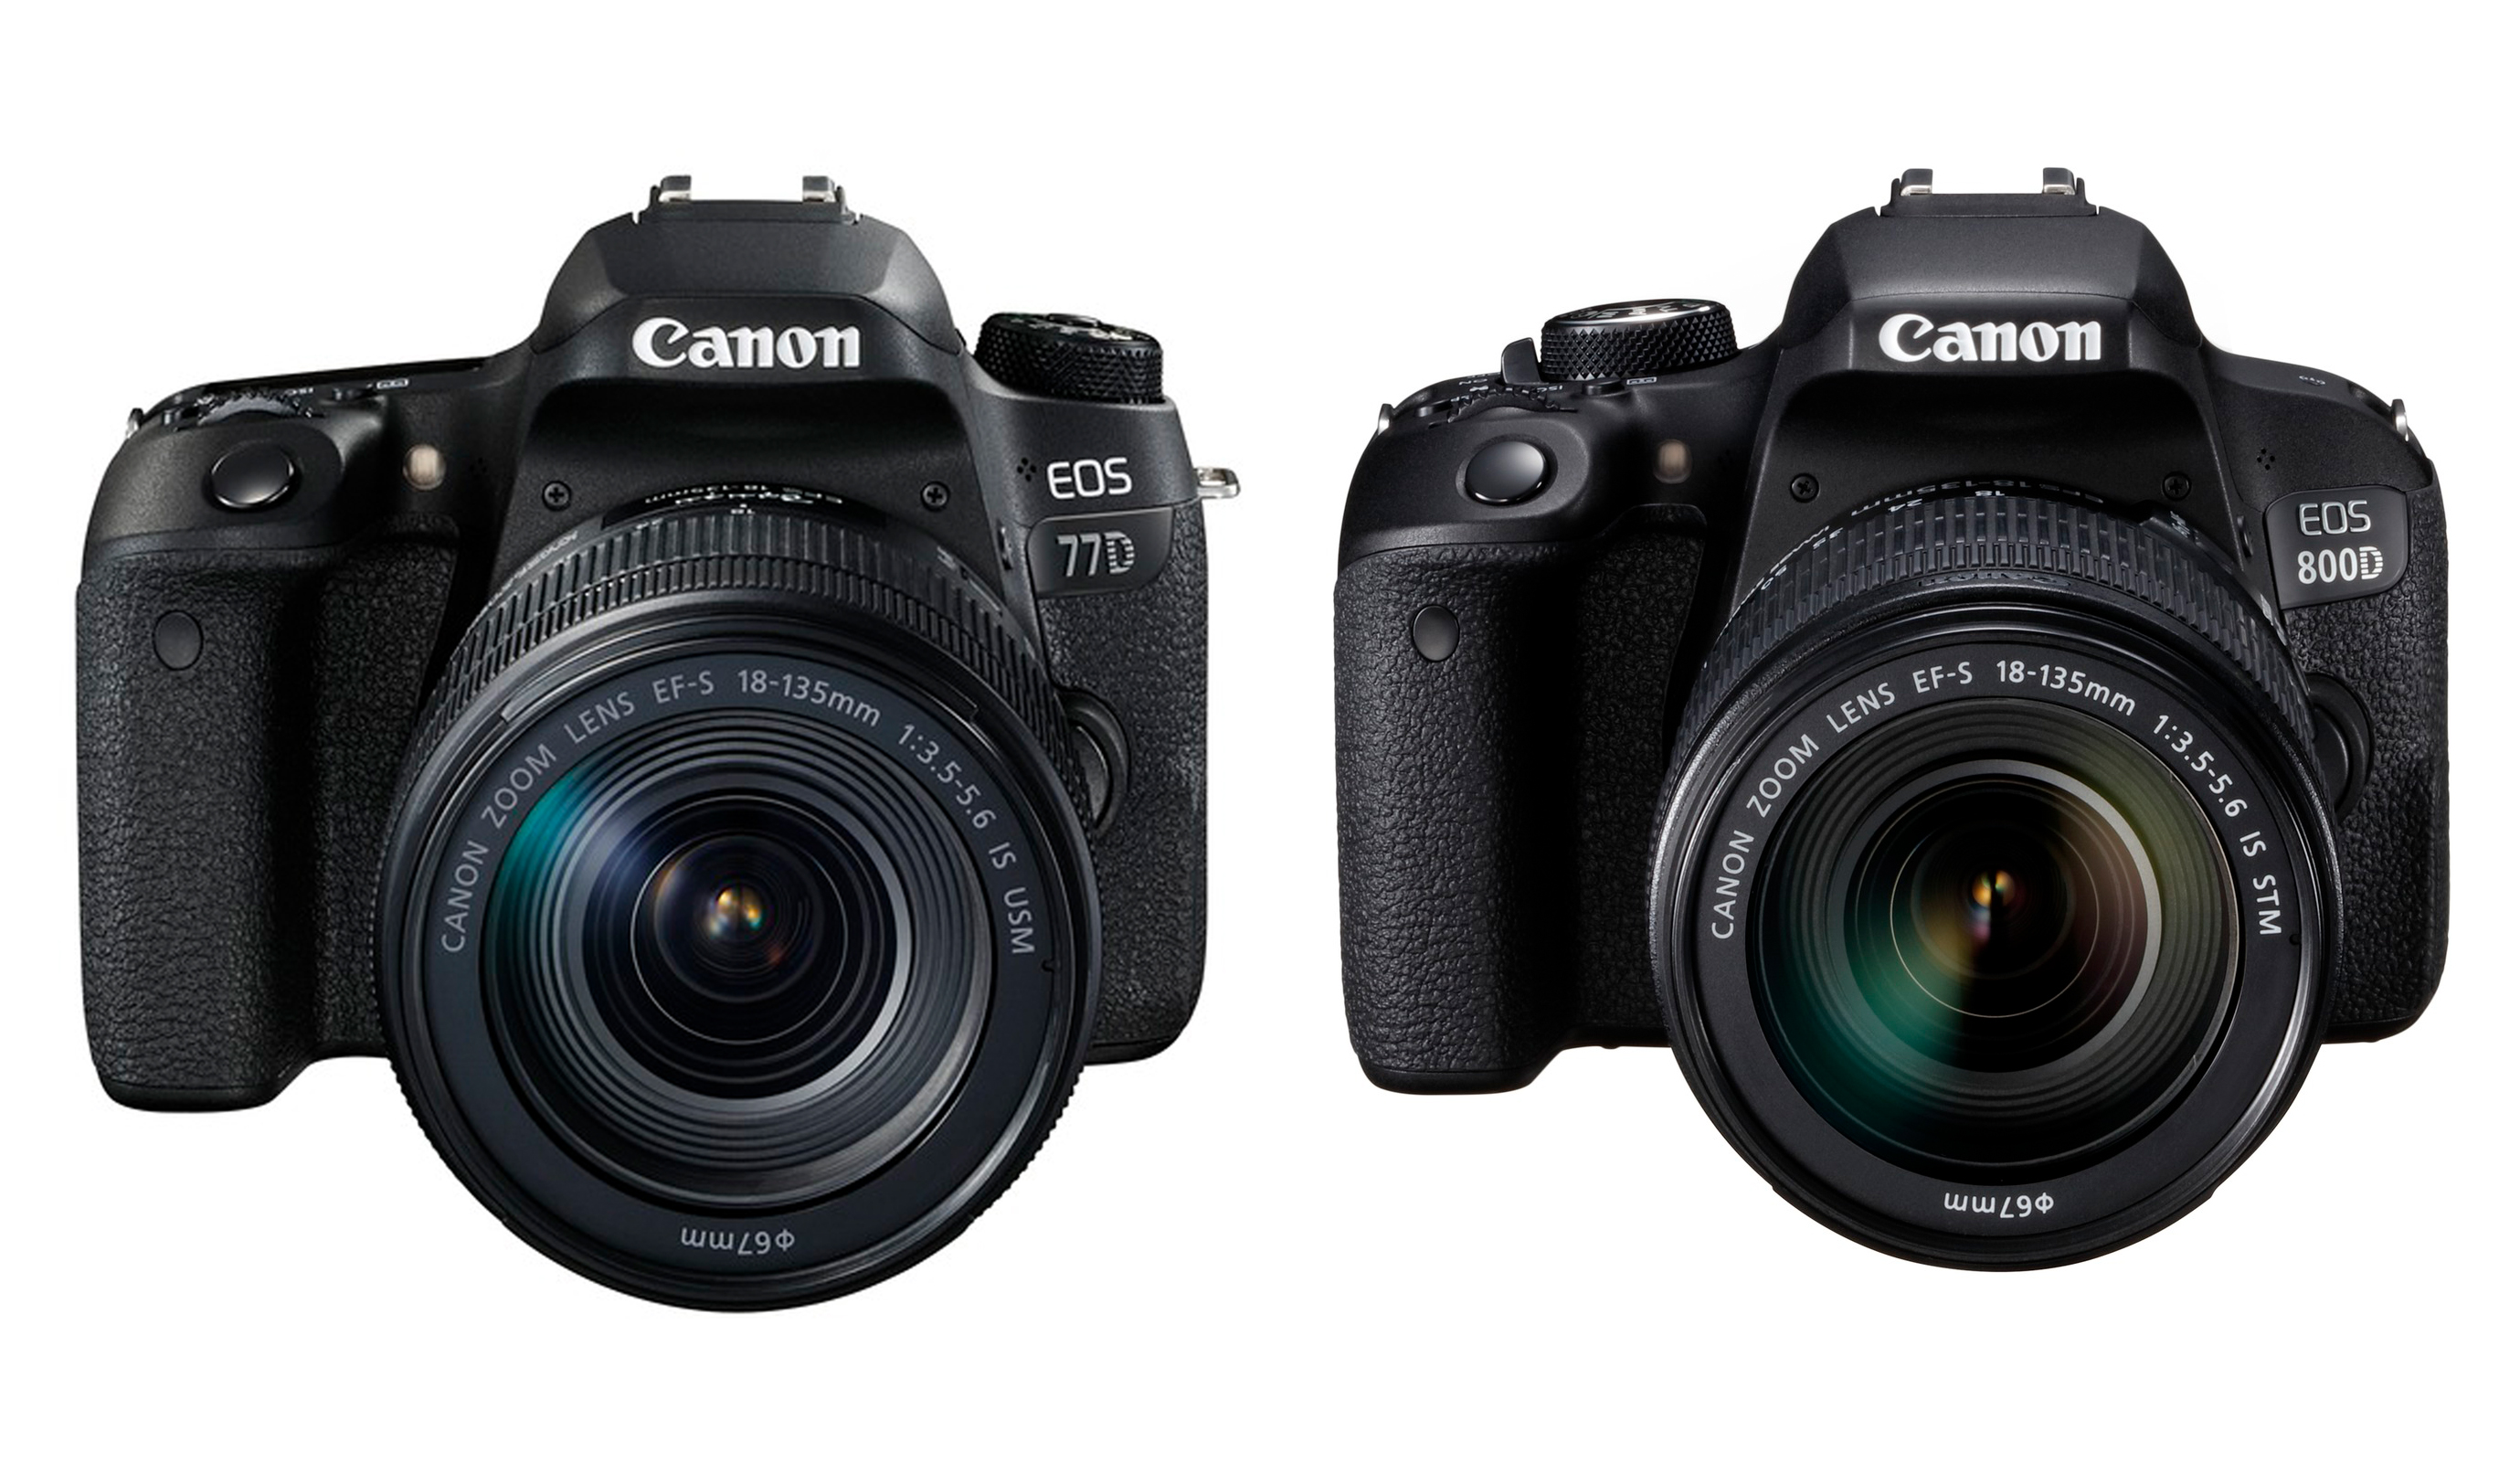 Canon EOS 77D review: Hands on first look